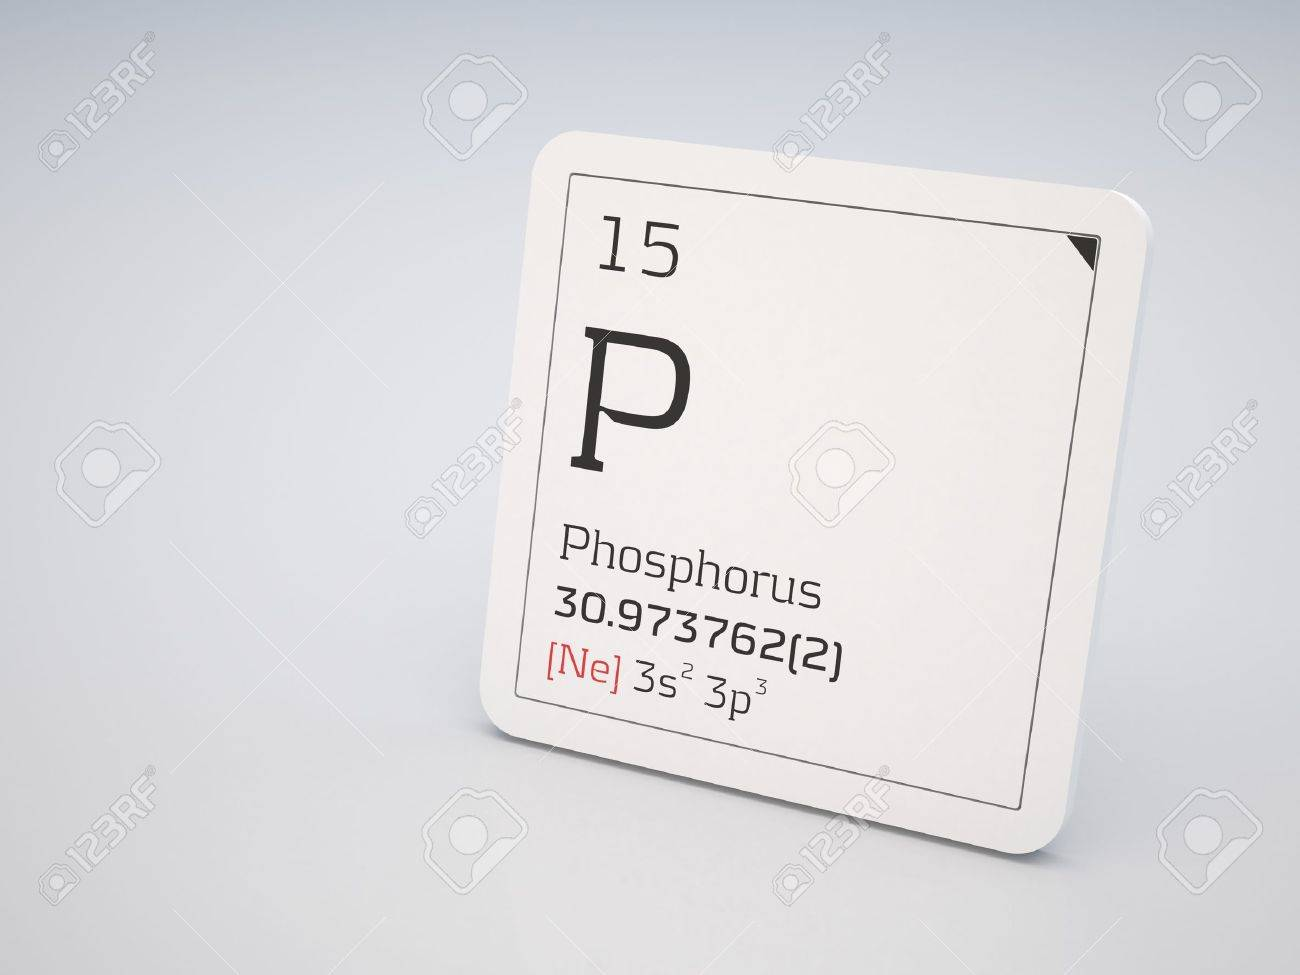 Periodic table symbol for phosphorus images periodic table images phosphorous periodic table image collections periodic table images phosphorus periodic table choice image periodic table images gamestrikefo Image collections